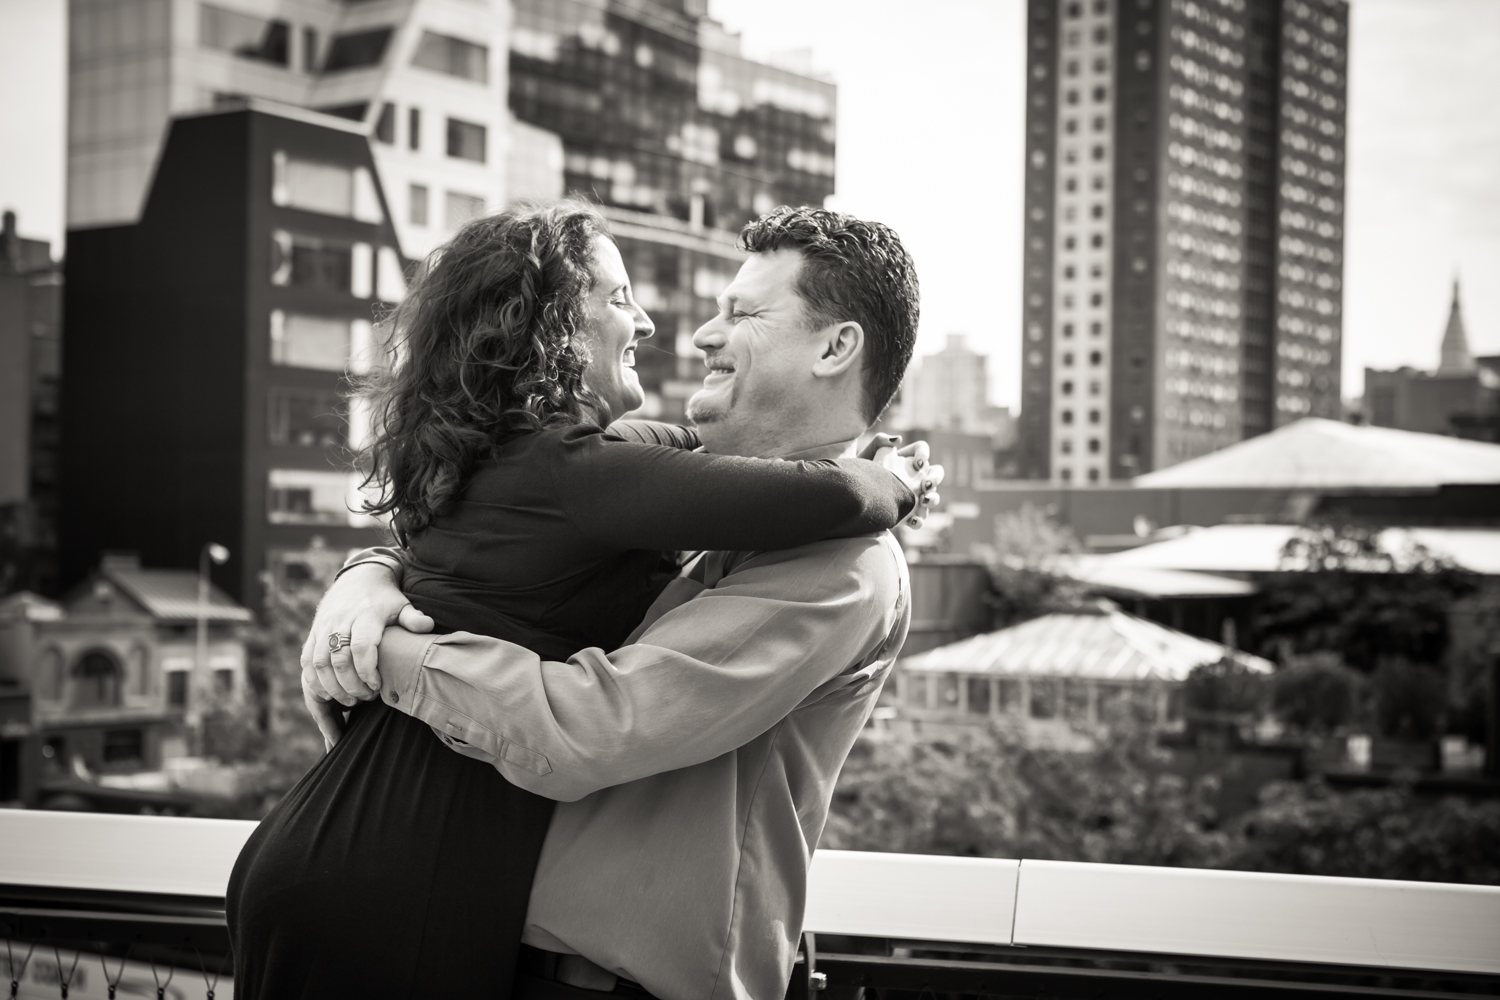 Black and white photo of man lifting up woman on the High Line